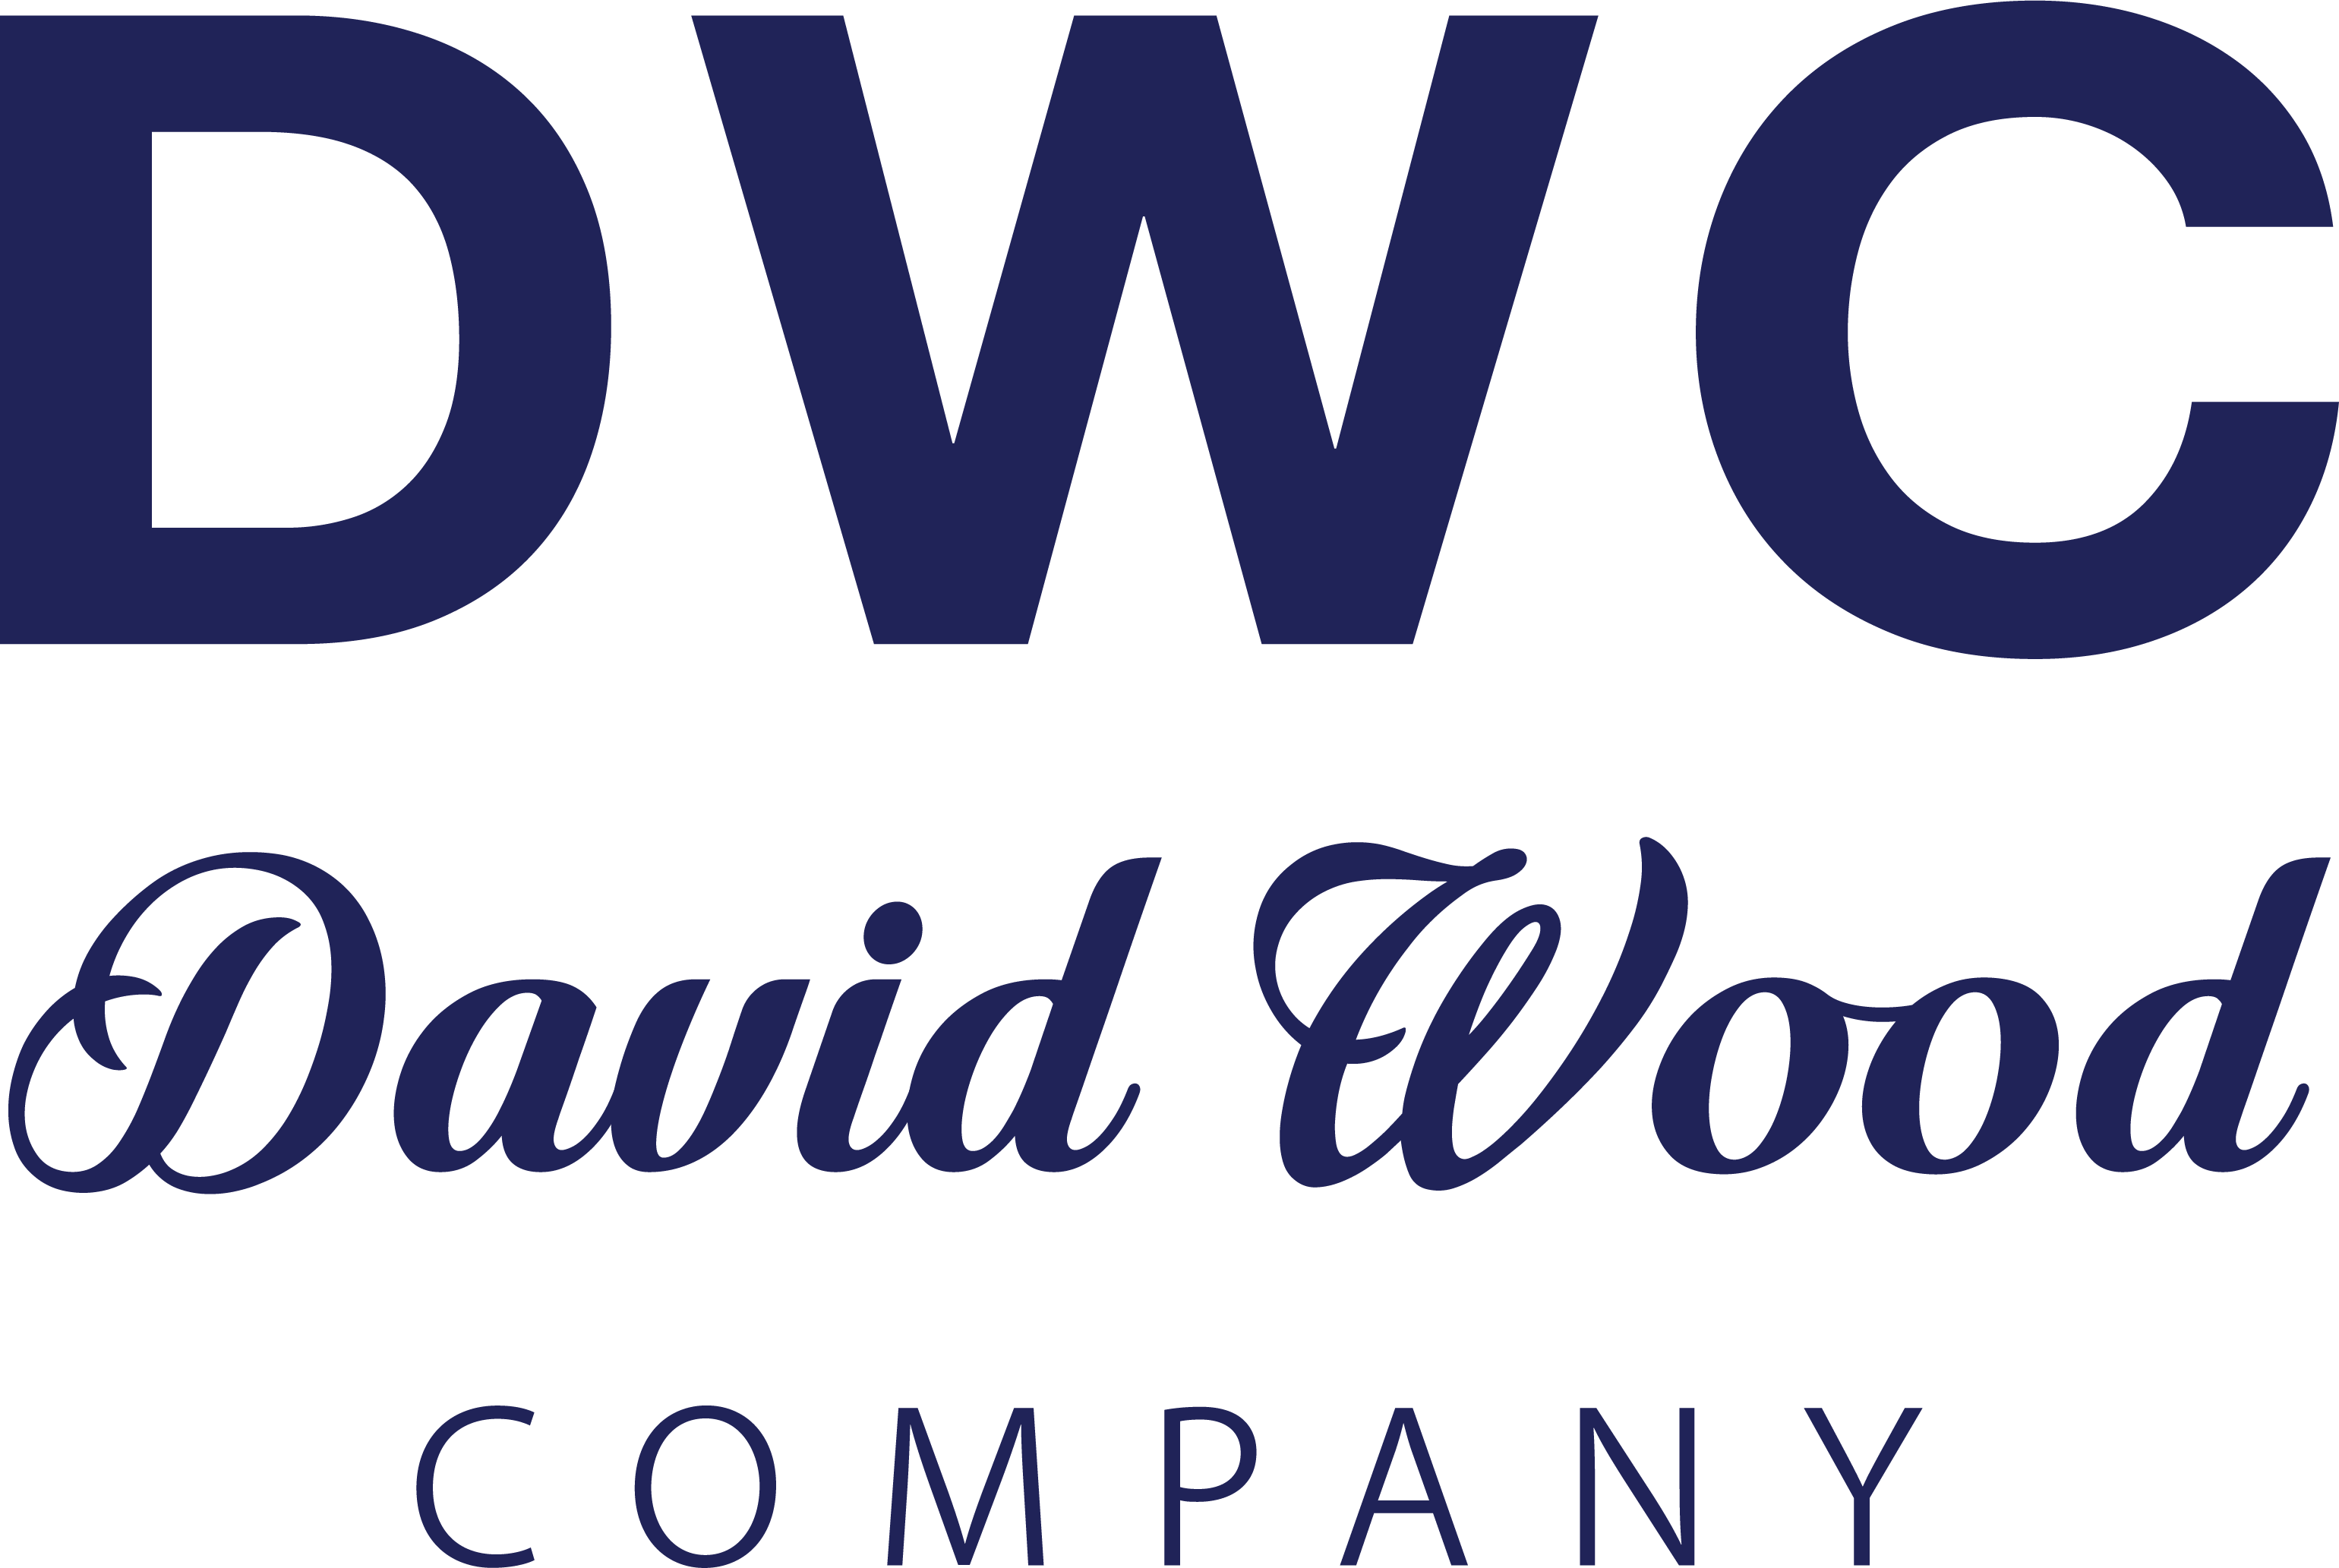 David Wood Company Pty Ltd